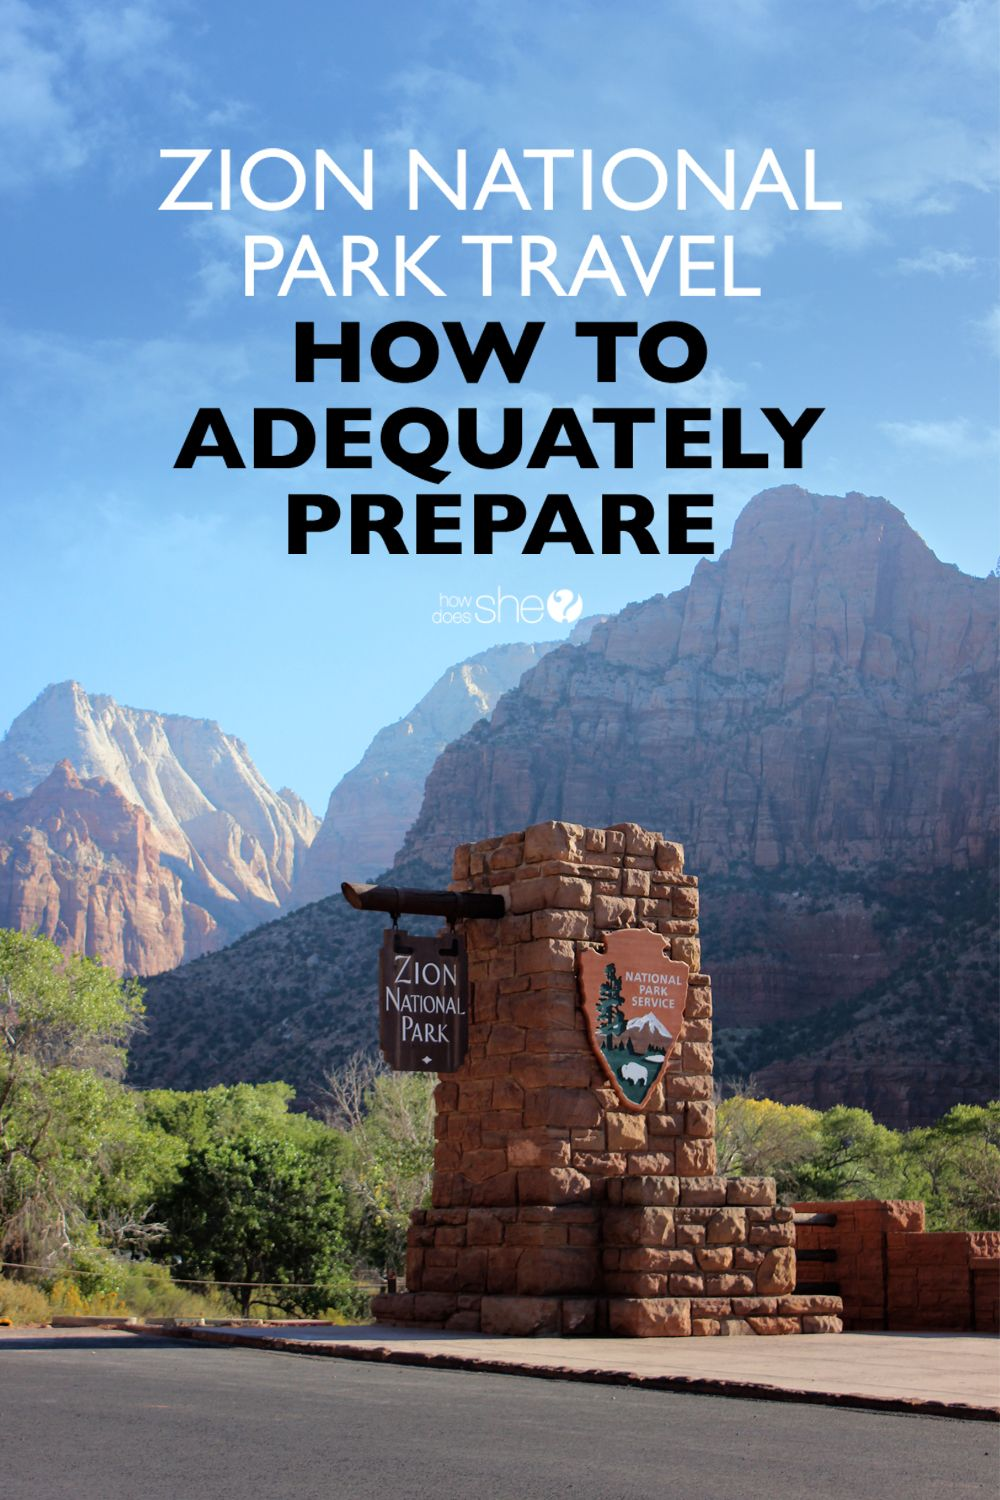 How To Do Zion National Park (and Be Adequately Prepared)